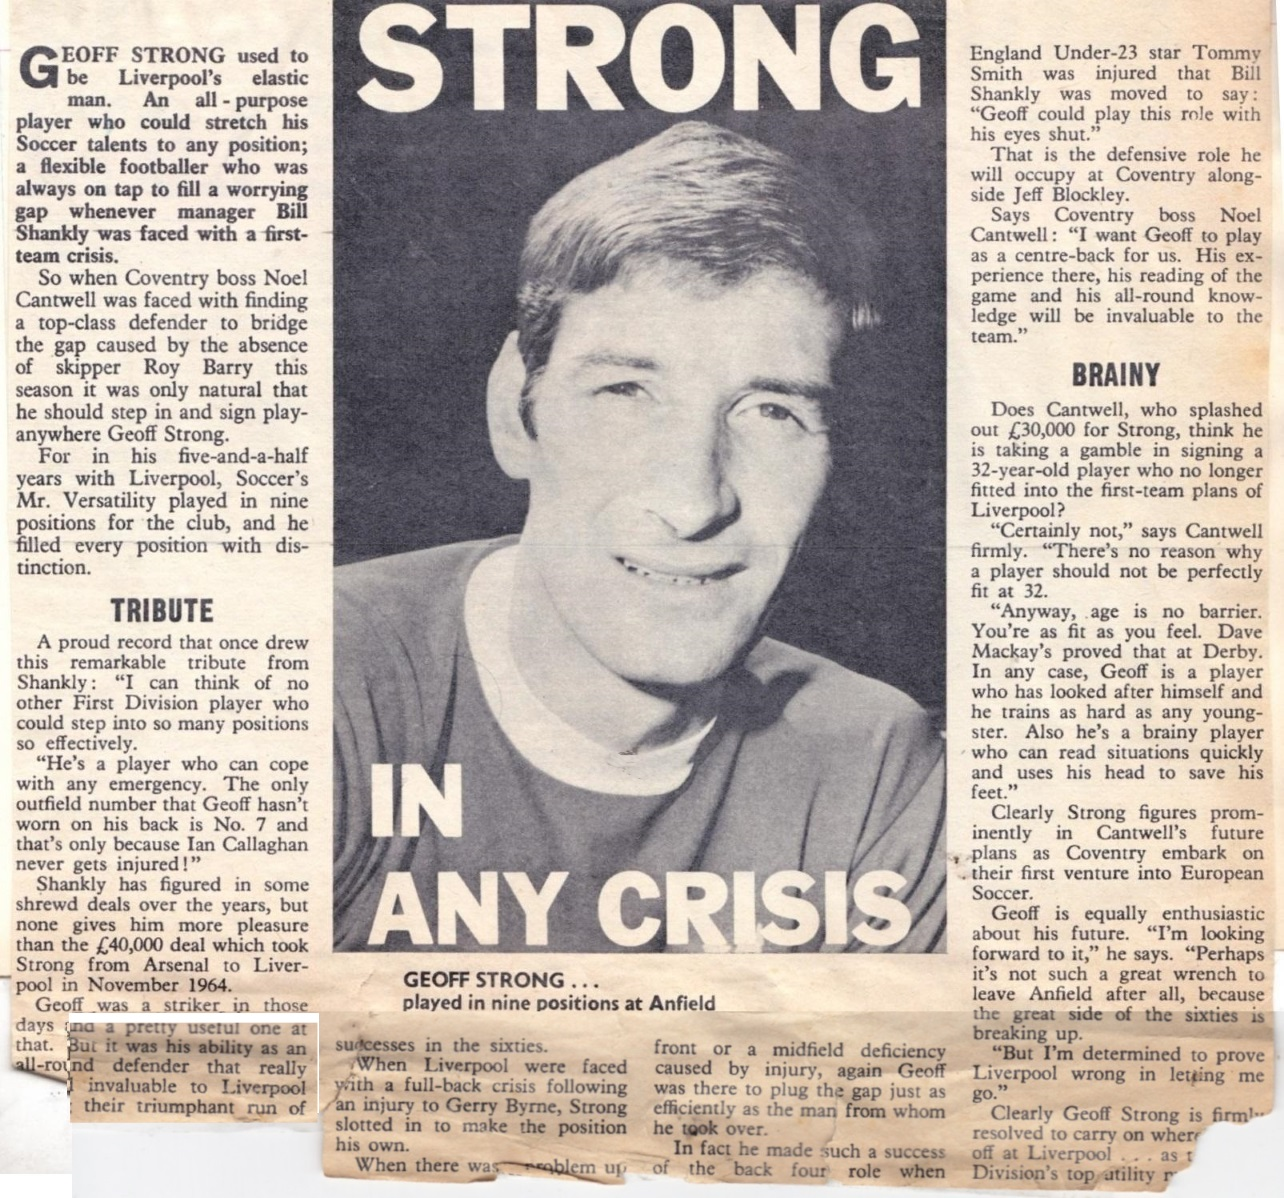 Strong in any crisis - 1970/71 season